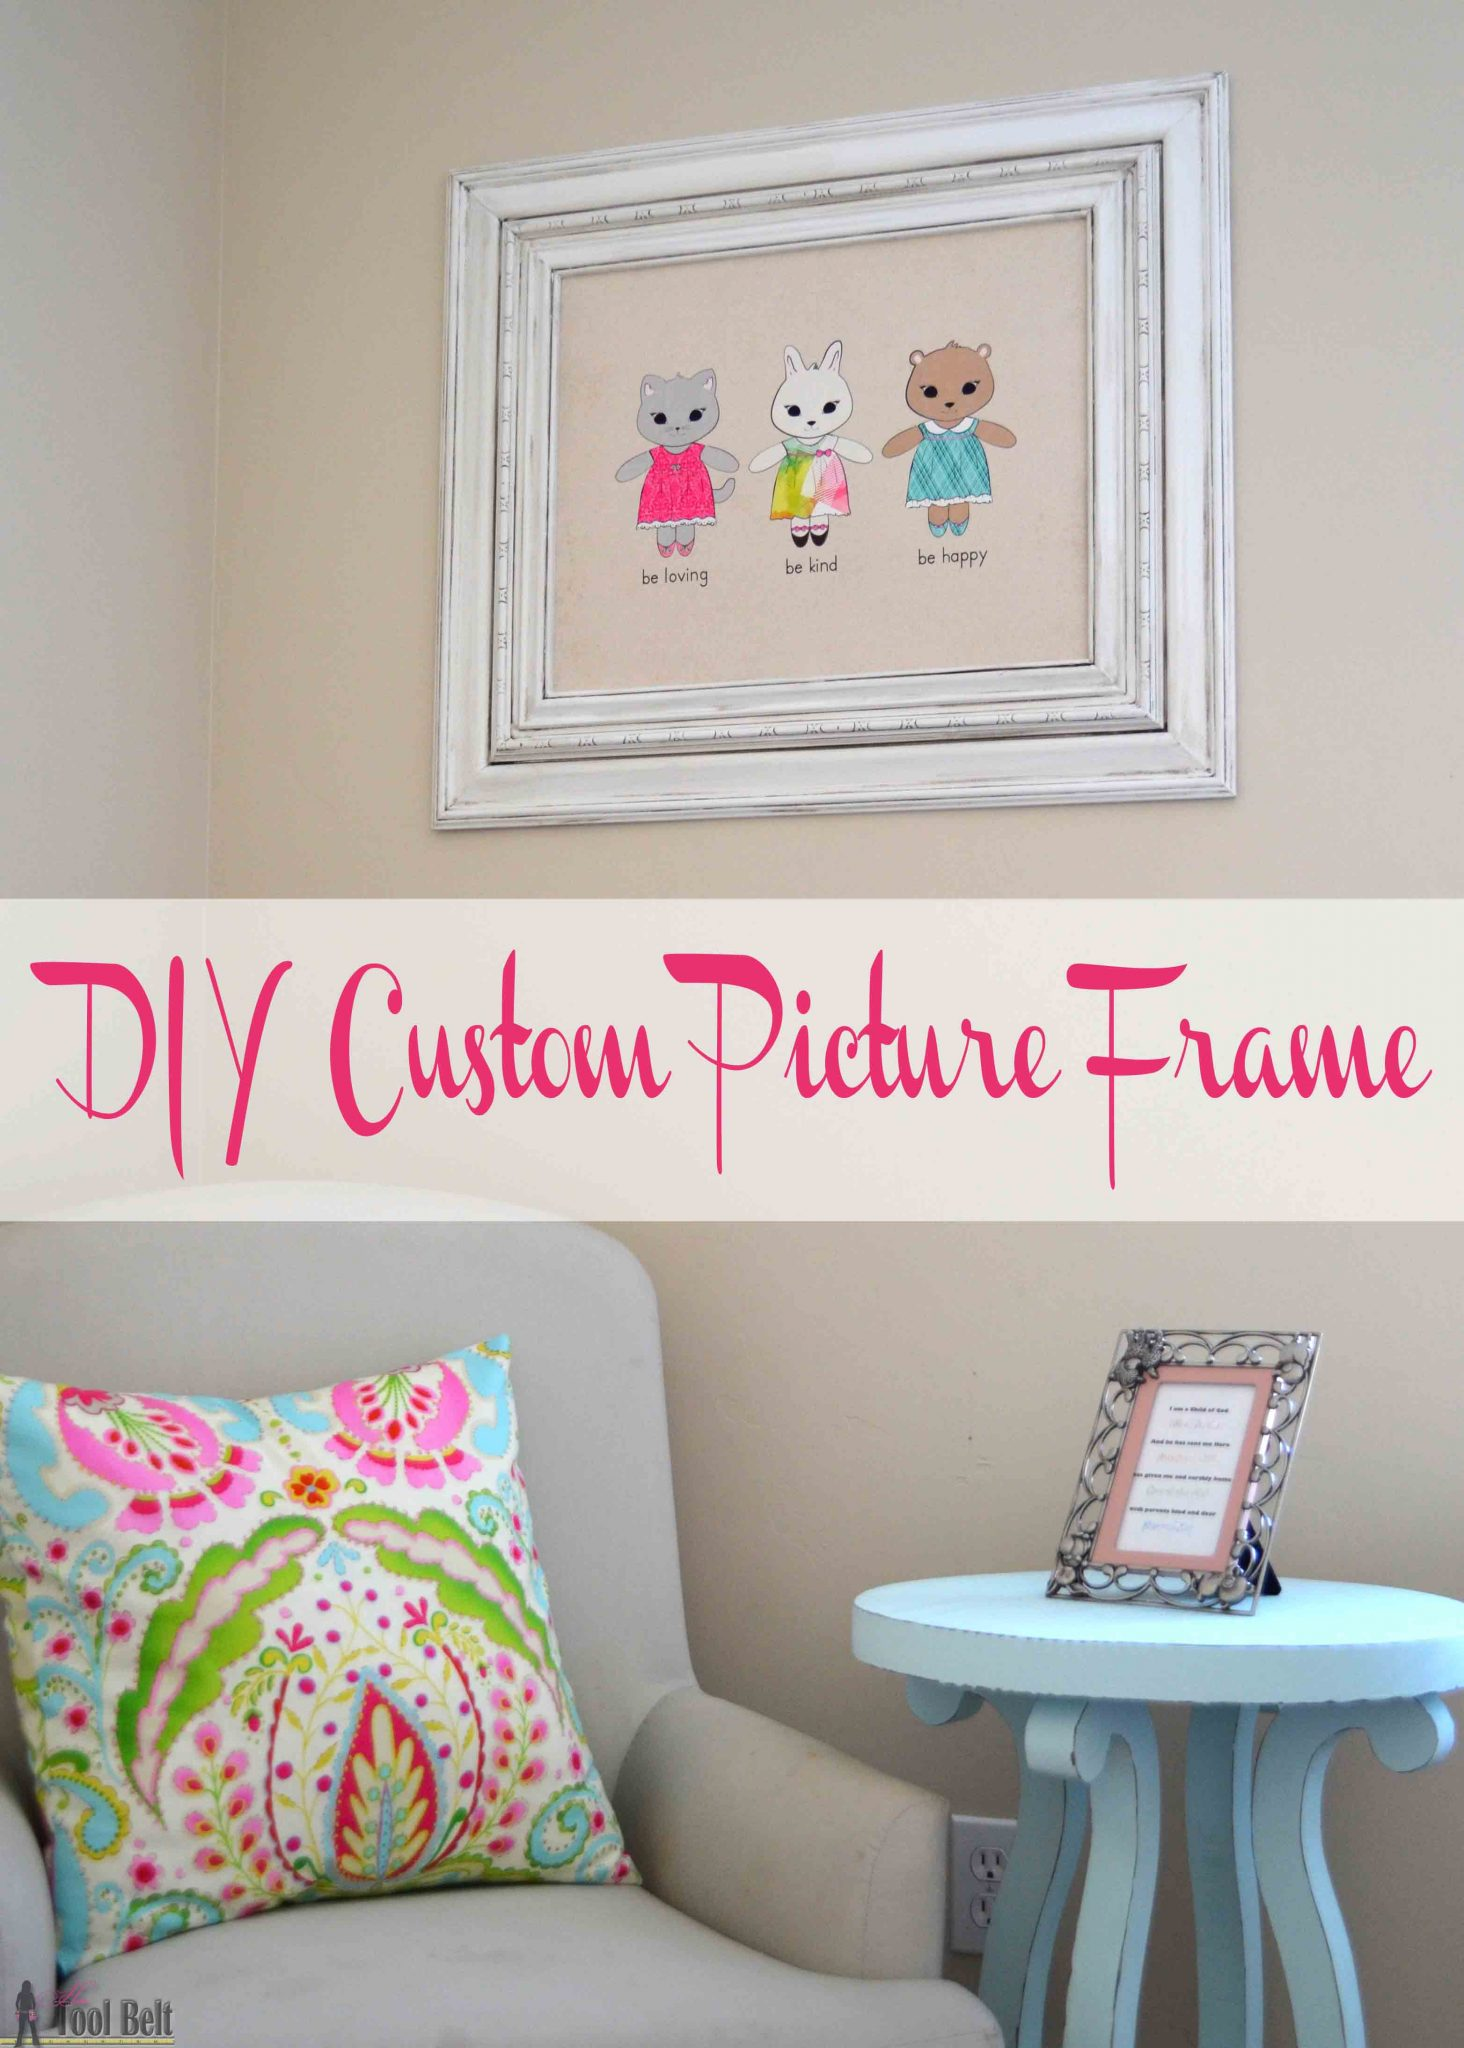 Diy custom picture frame her tool belt build a diy custom picture frame using moulding from the hardware store so much cheaper jeuxipadfo Gallery